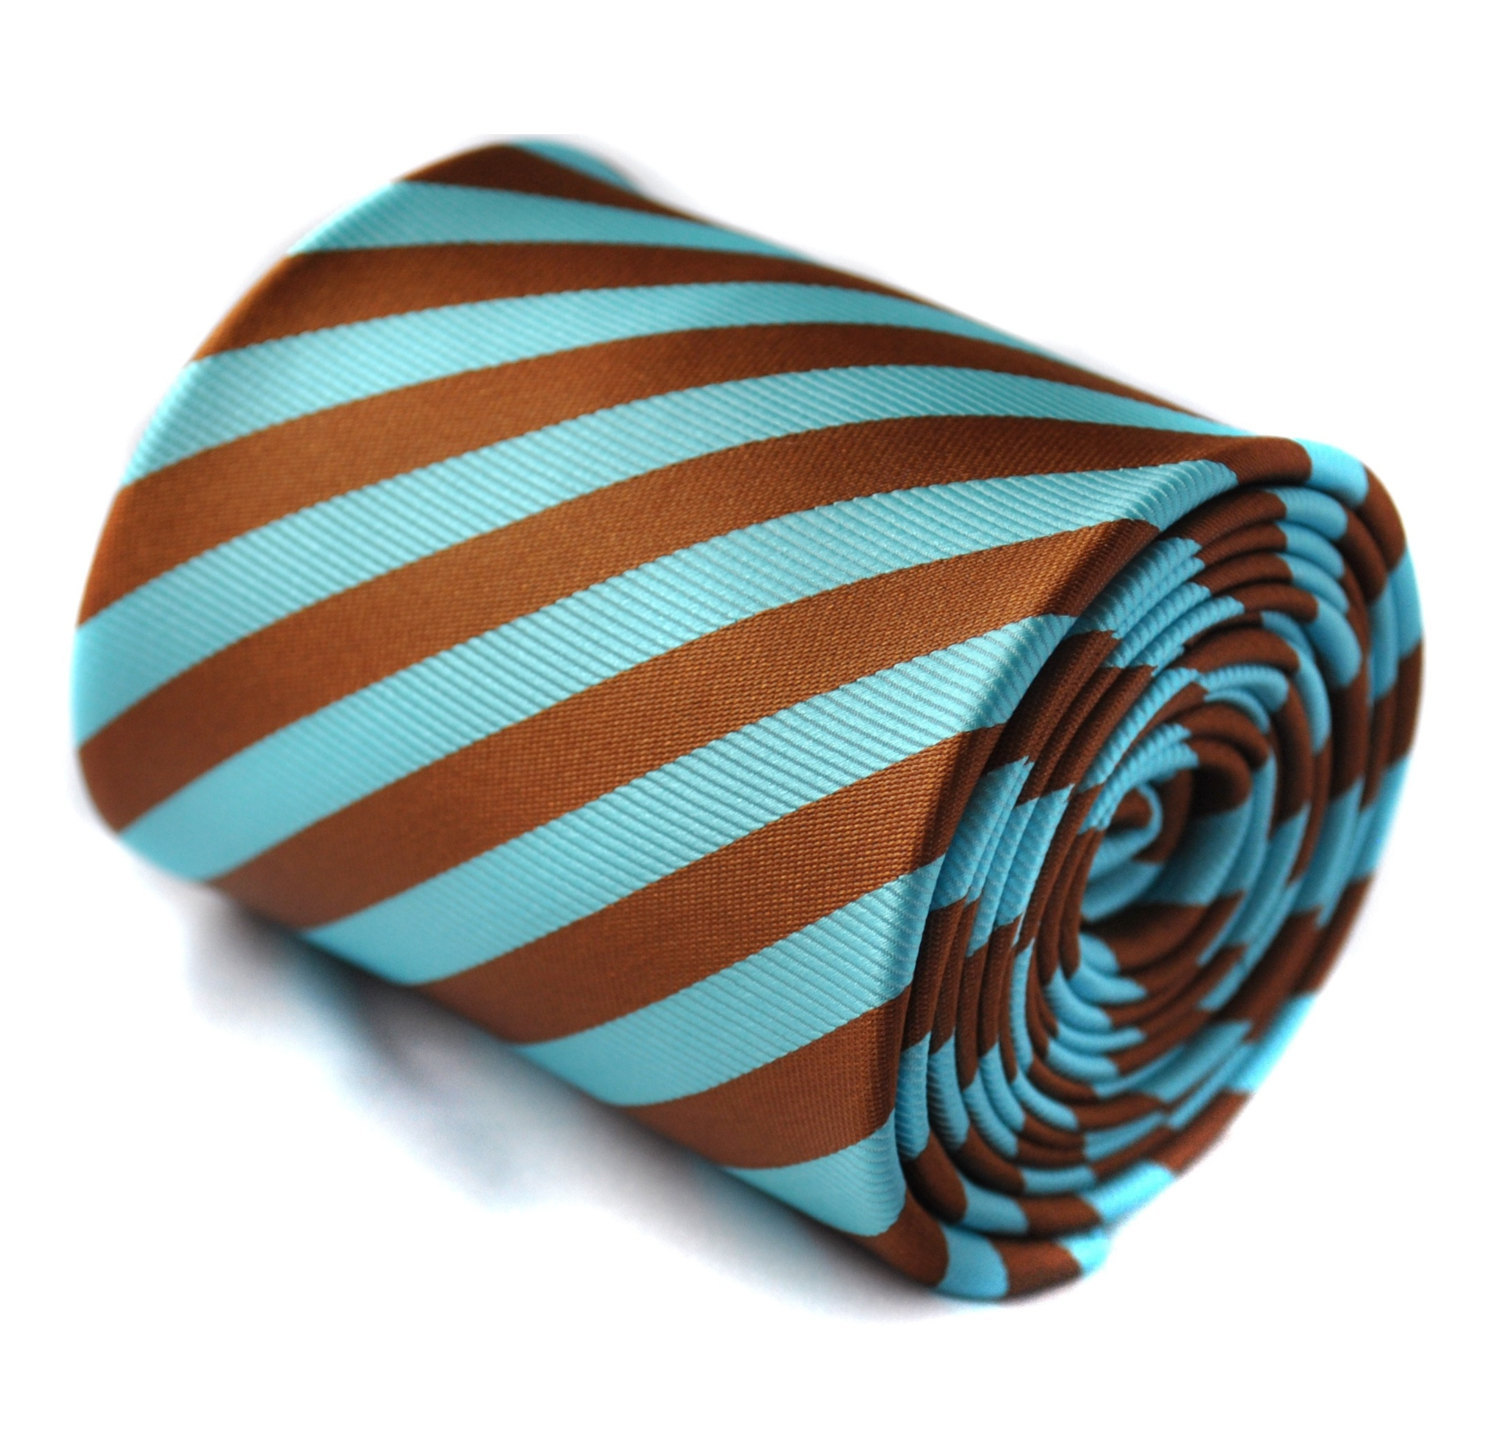 brown and turquoise striped tie with signature floral design to rear by Frederic